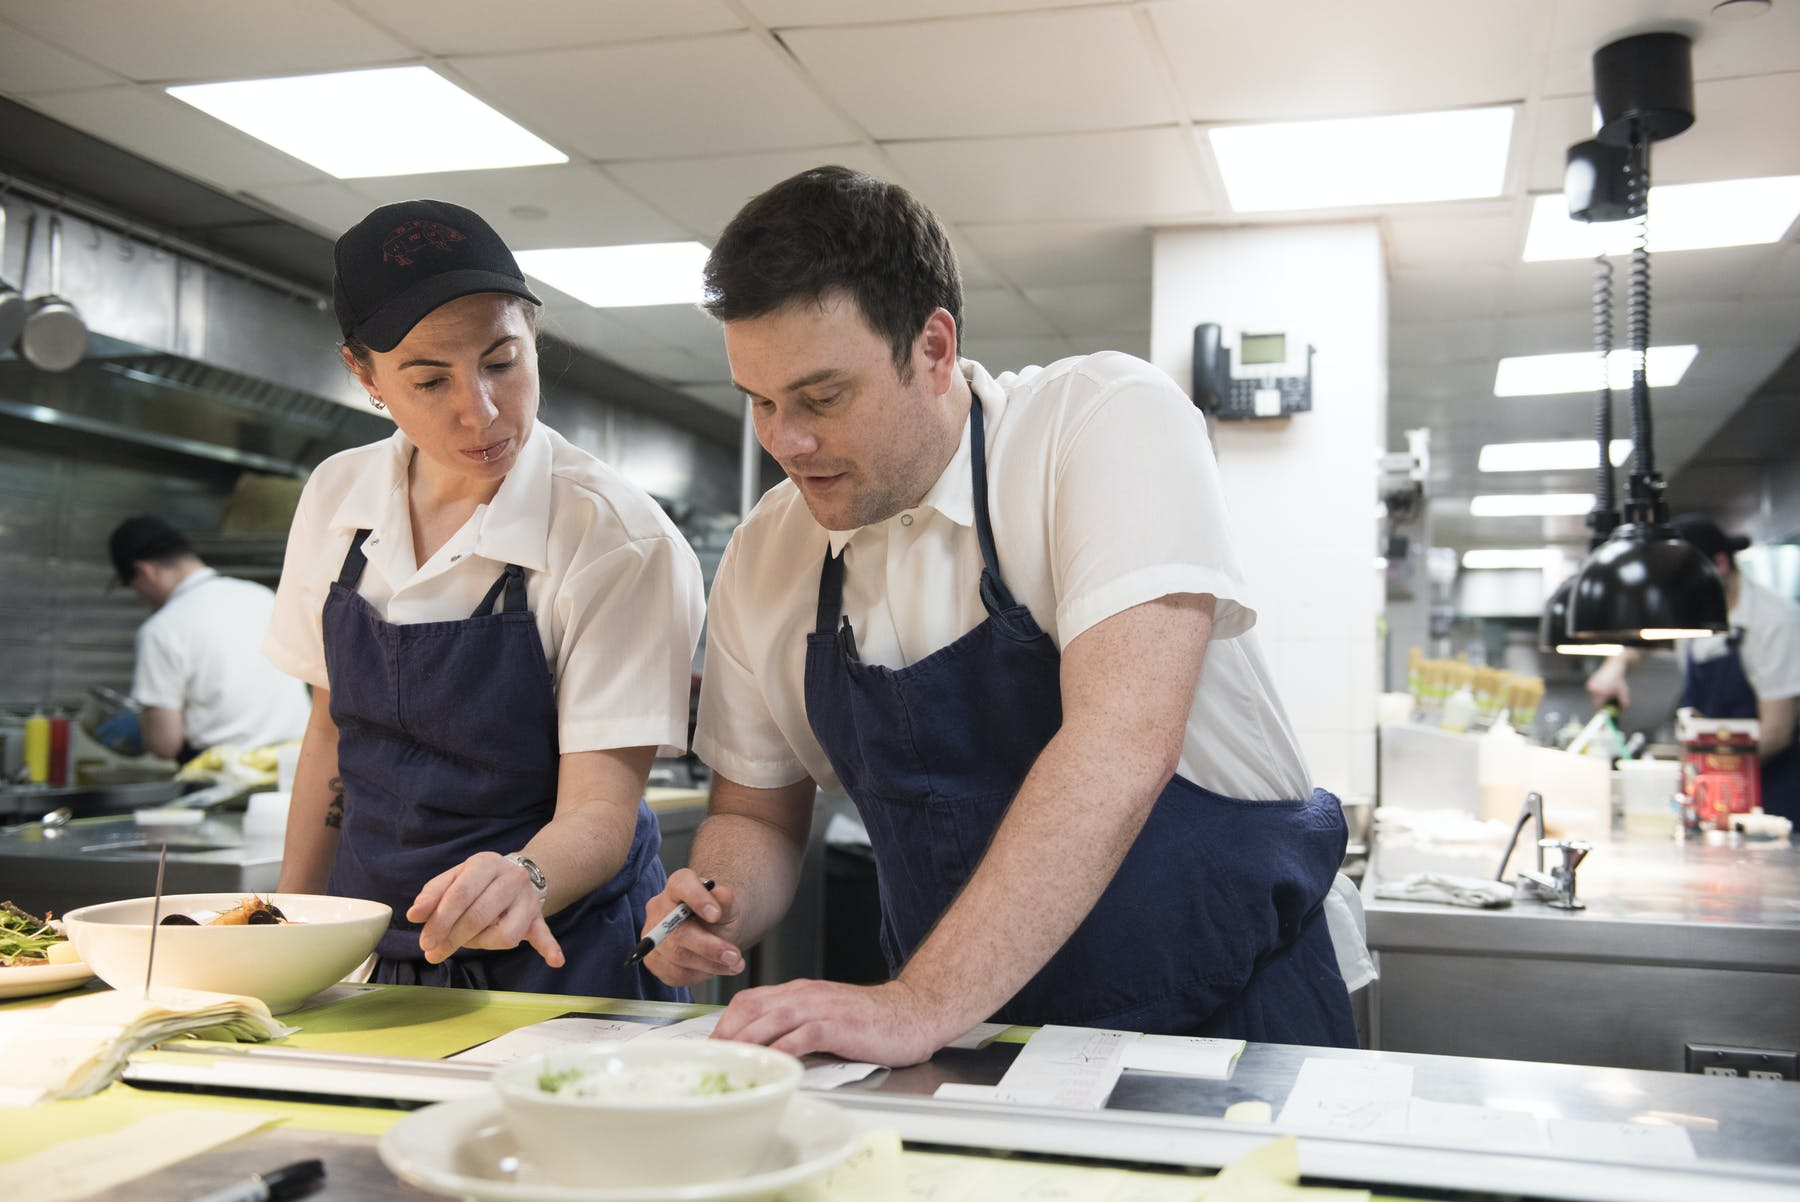 Chef de Cuisine Matt Spivey mentoring a colleague in the kitchen